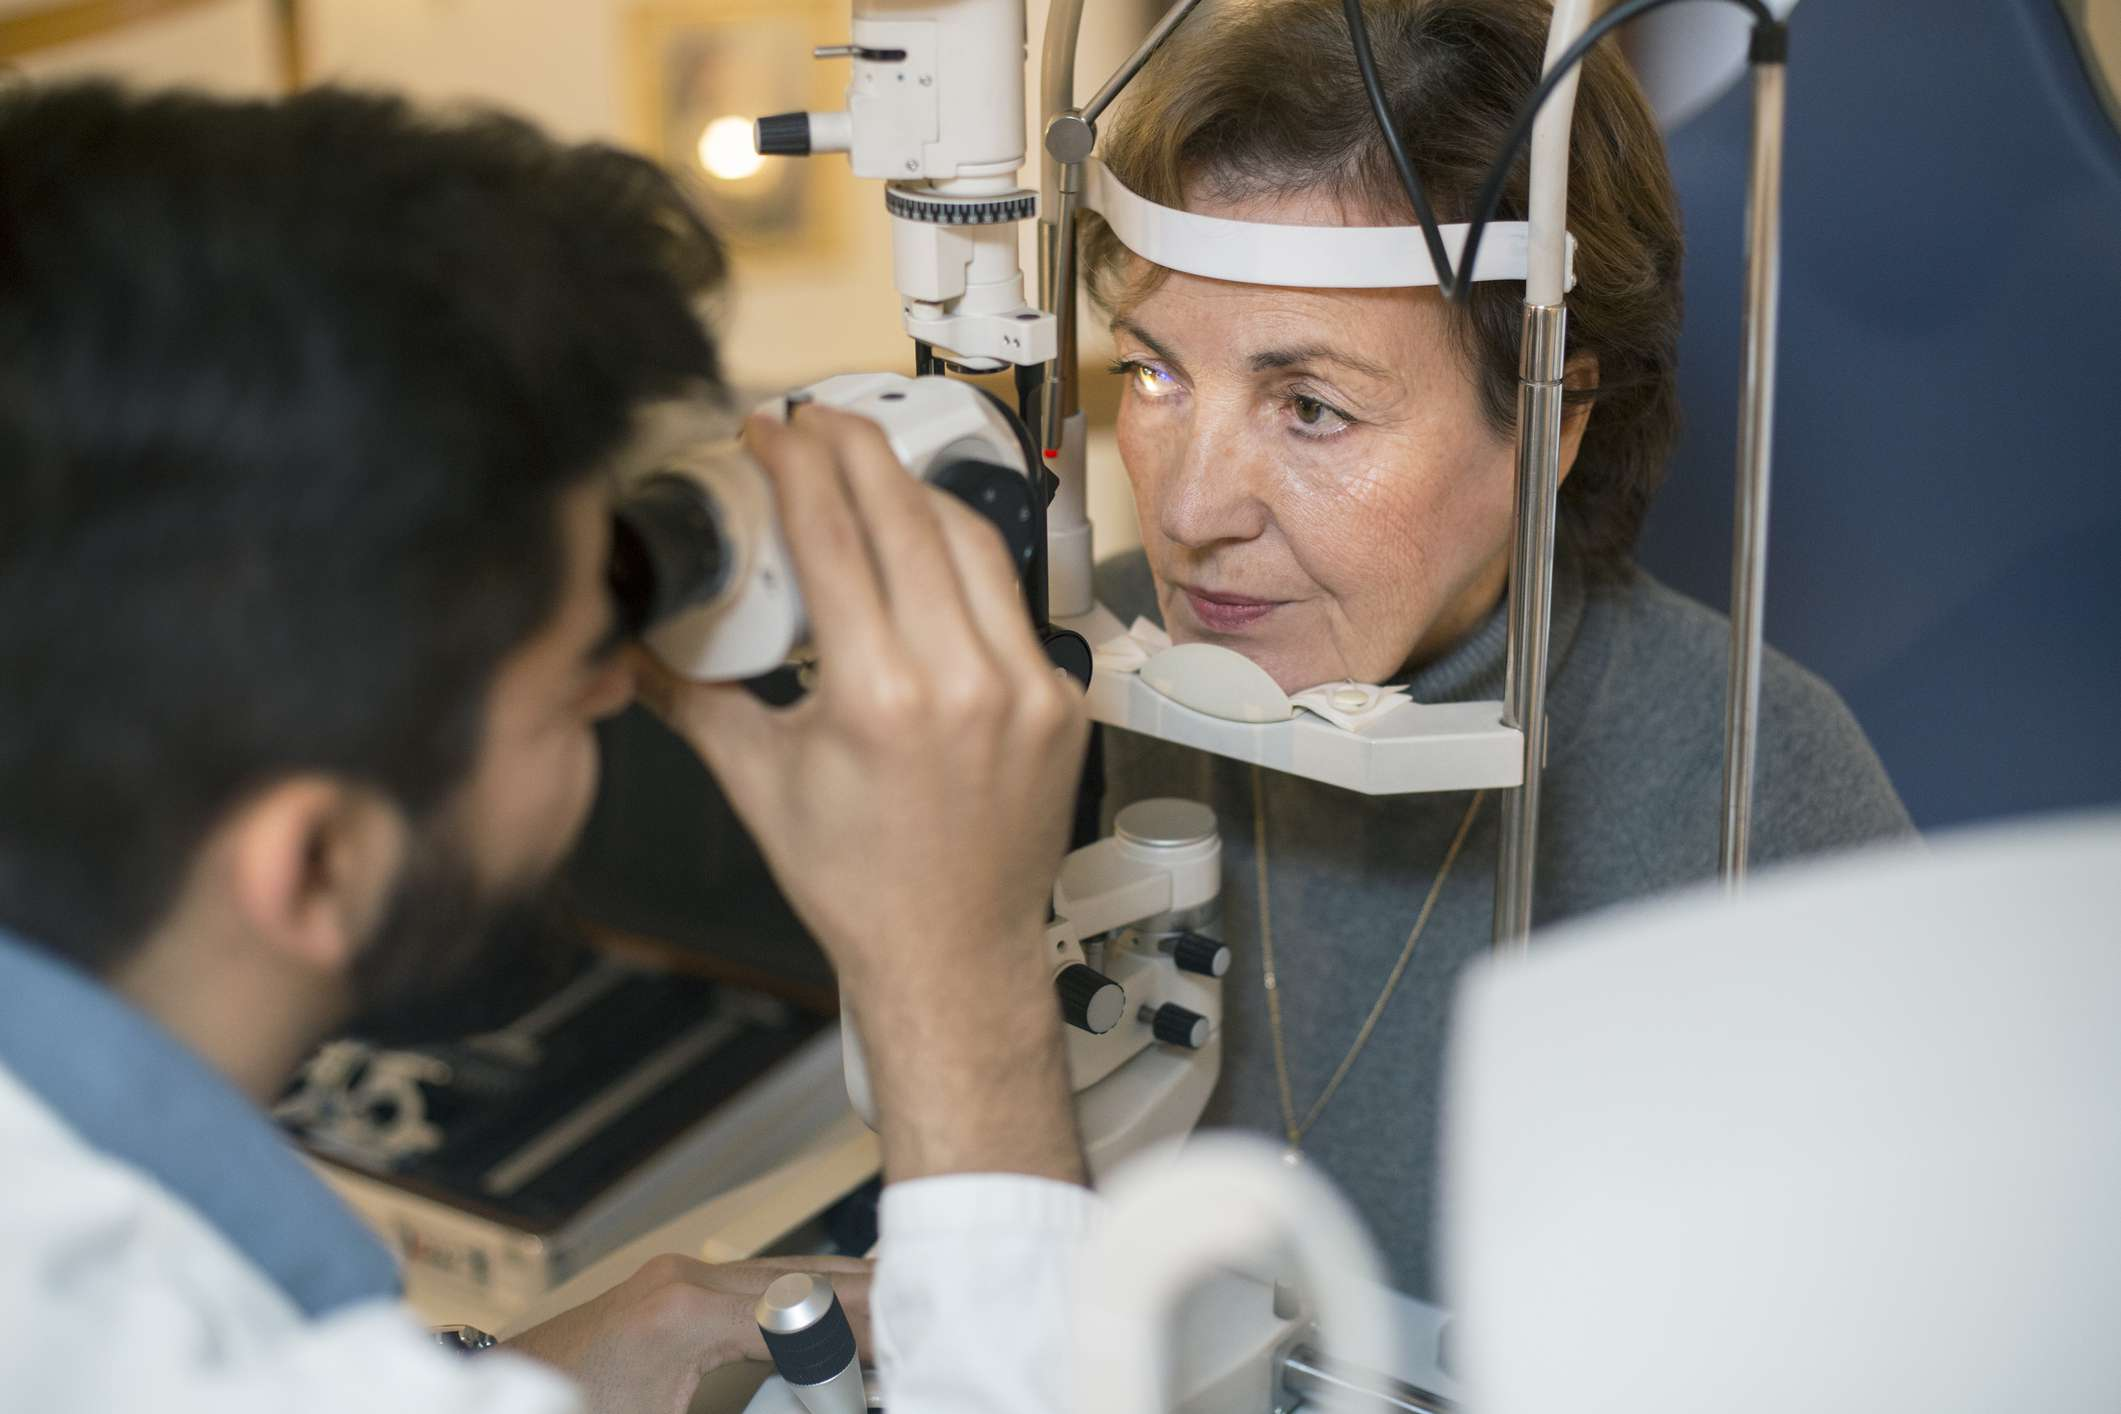 Senior woman during an eye testing with a male optometrist. About 35 years old doctor and about 60 years old female patient, both Caucasian.